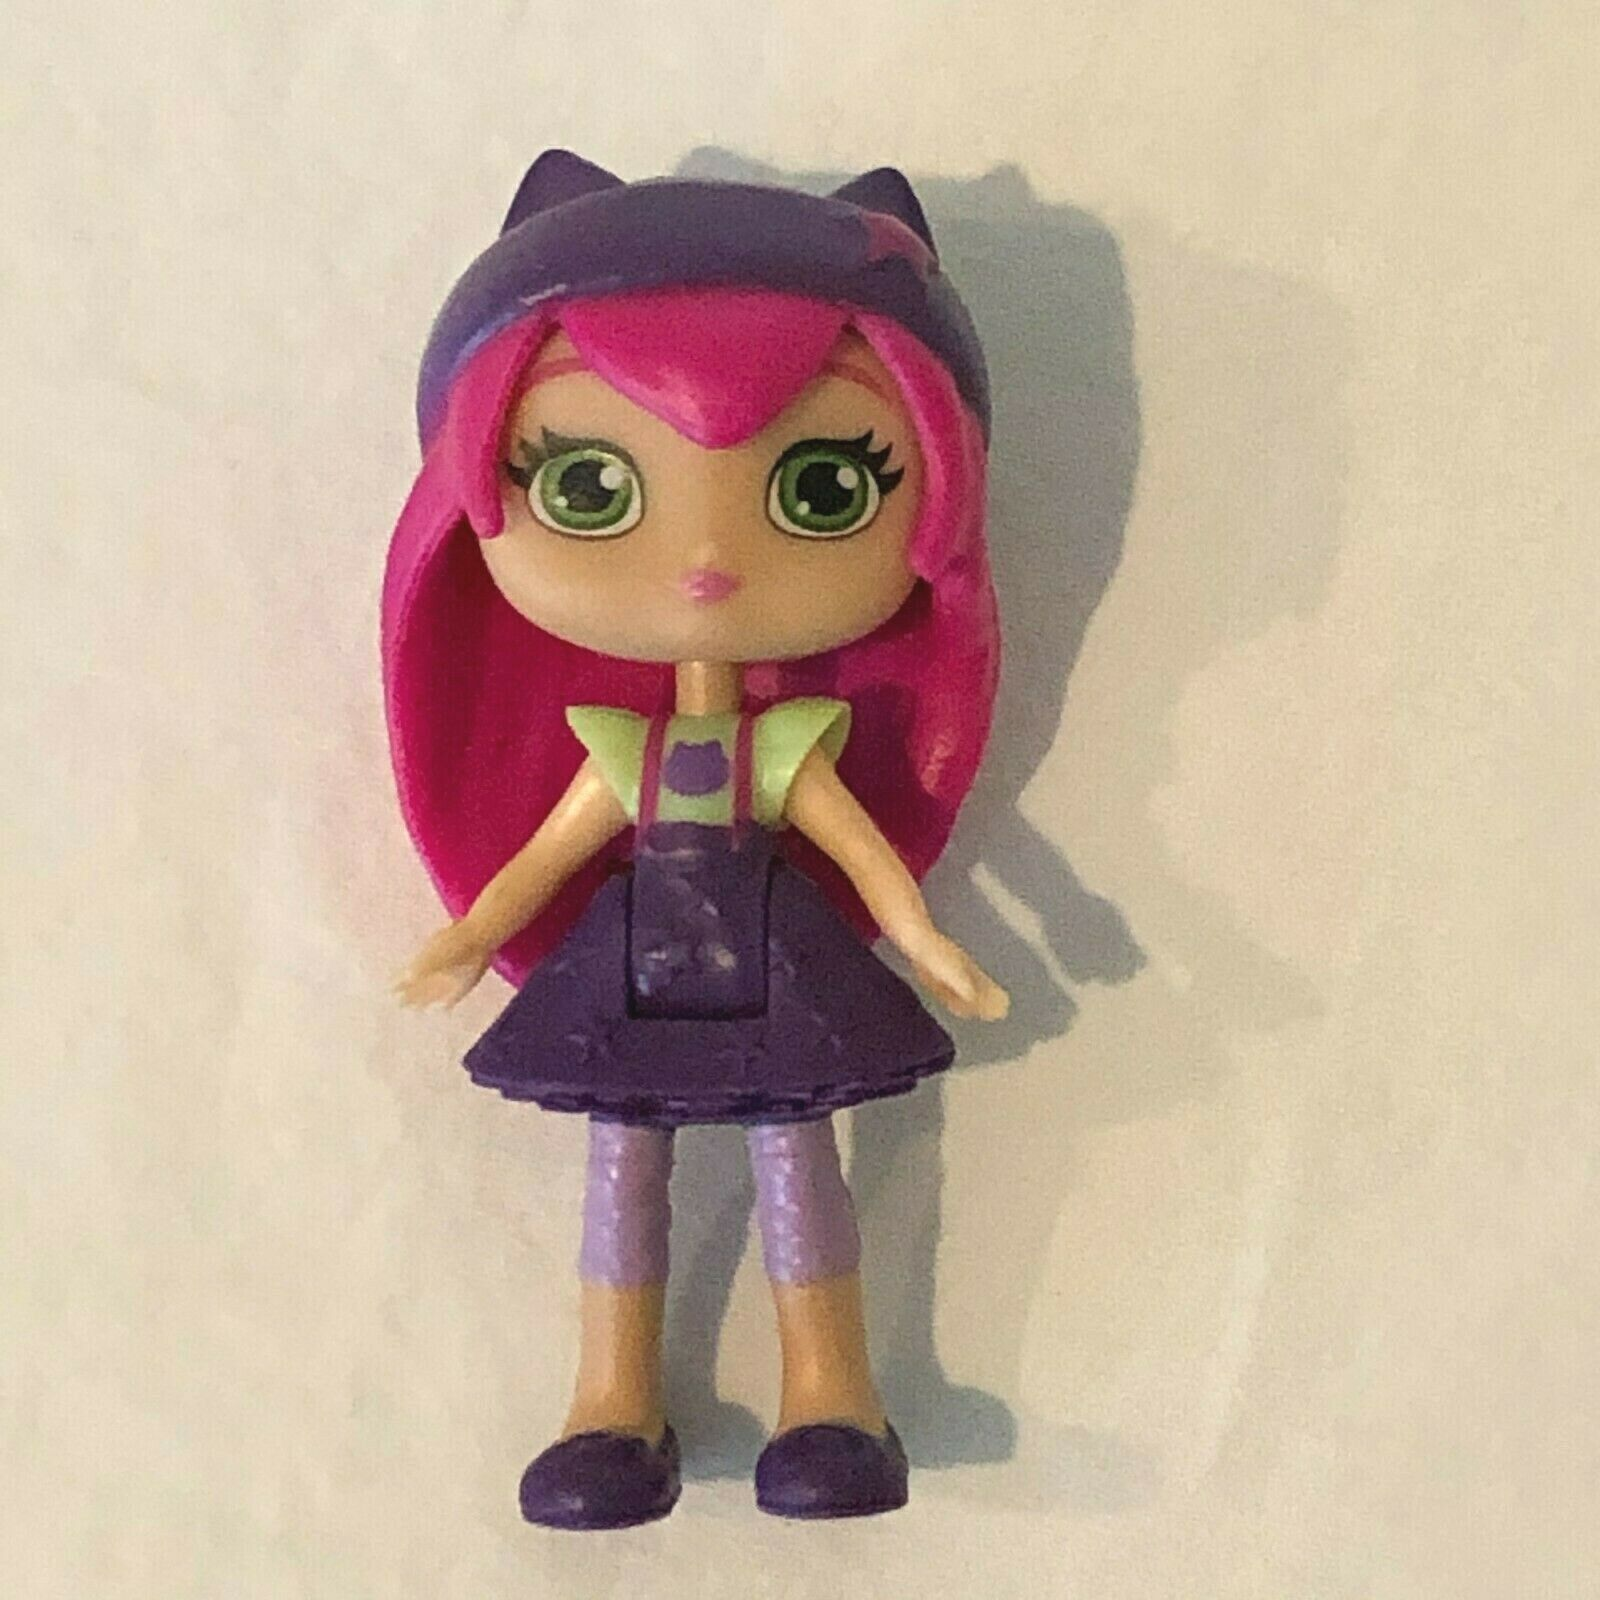 Primary image for Spin Master Little Charmers Hazel Doll Figure Pink Hair Purple Dress Bend Waist